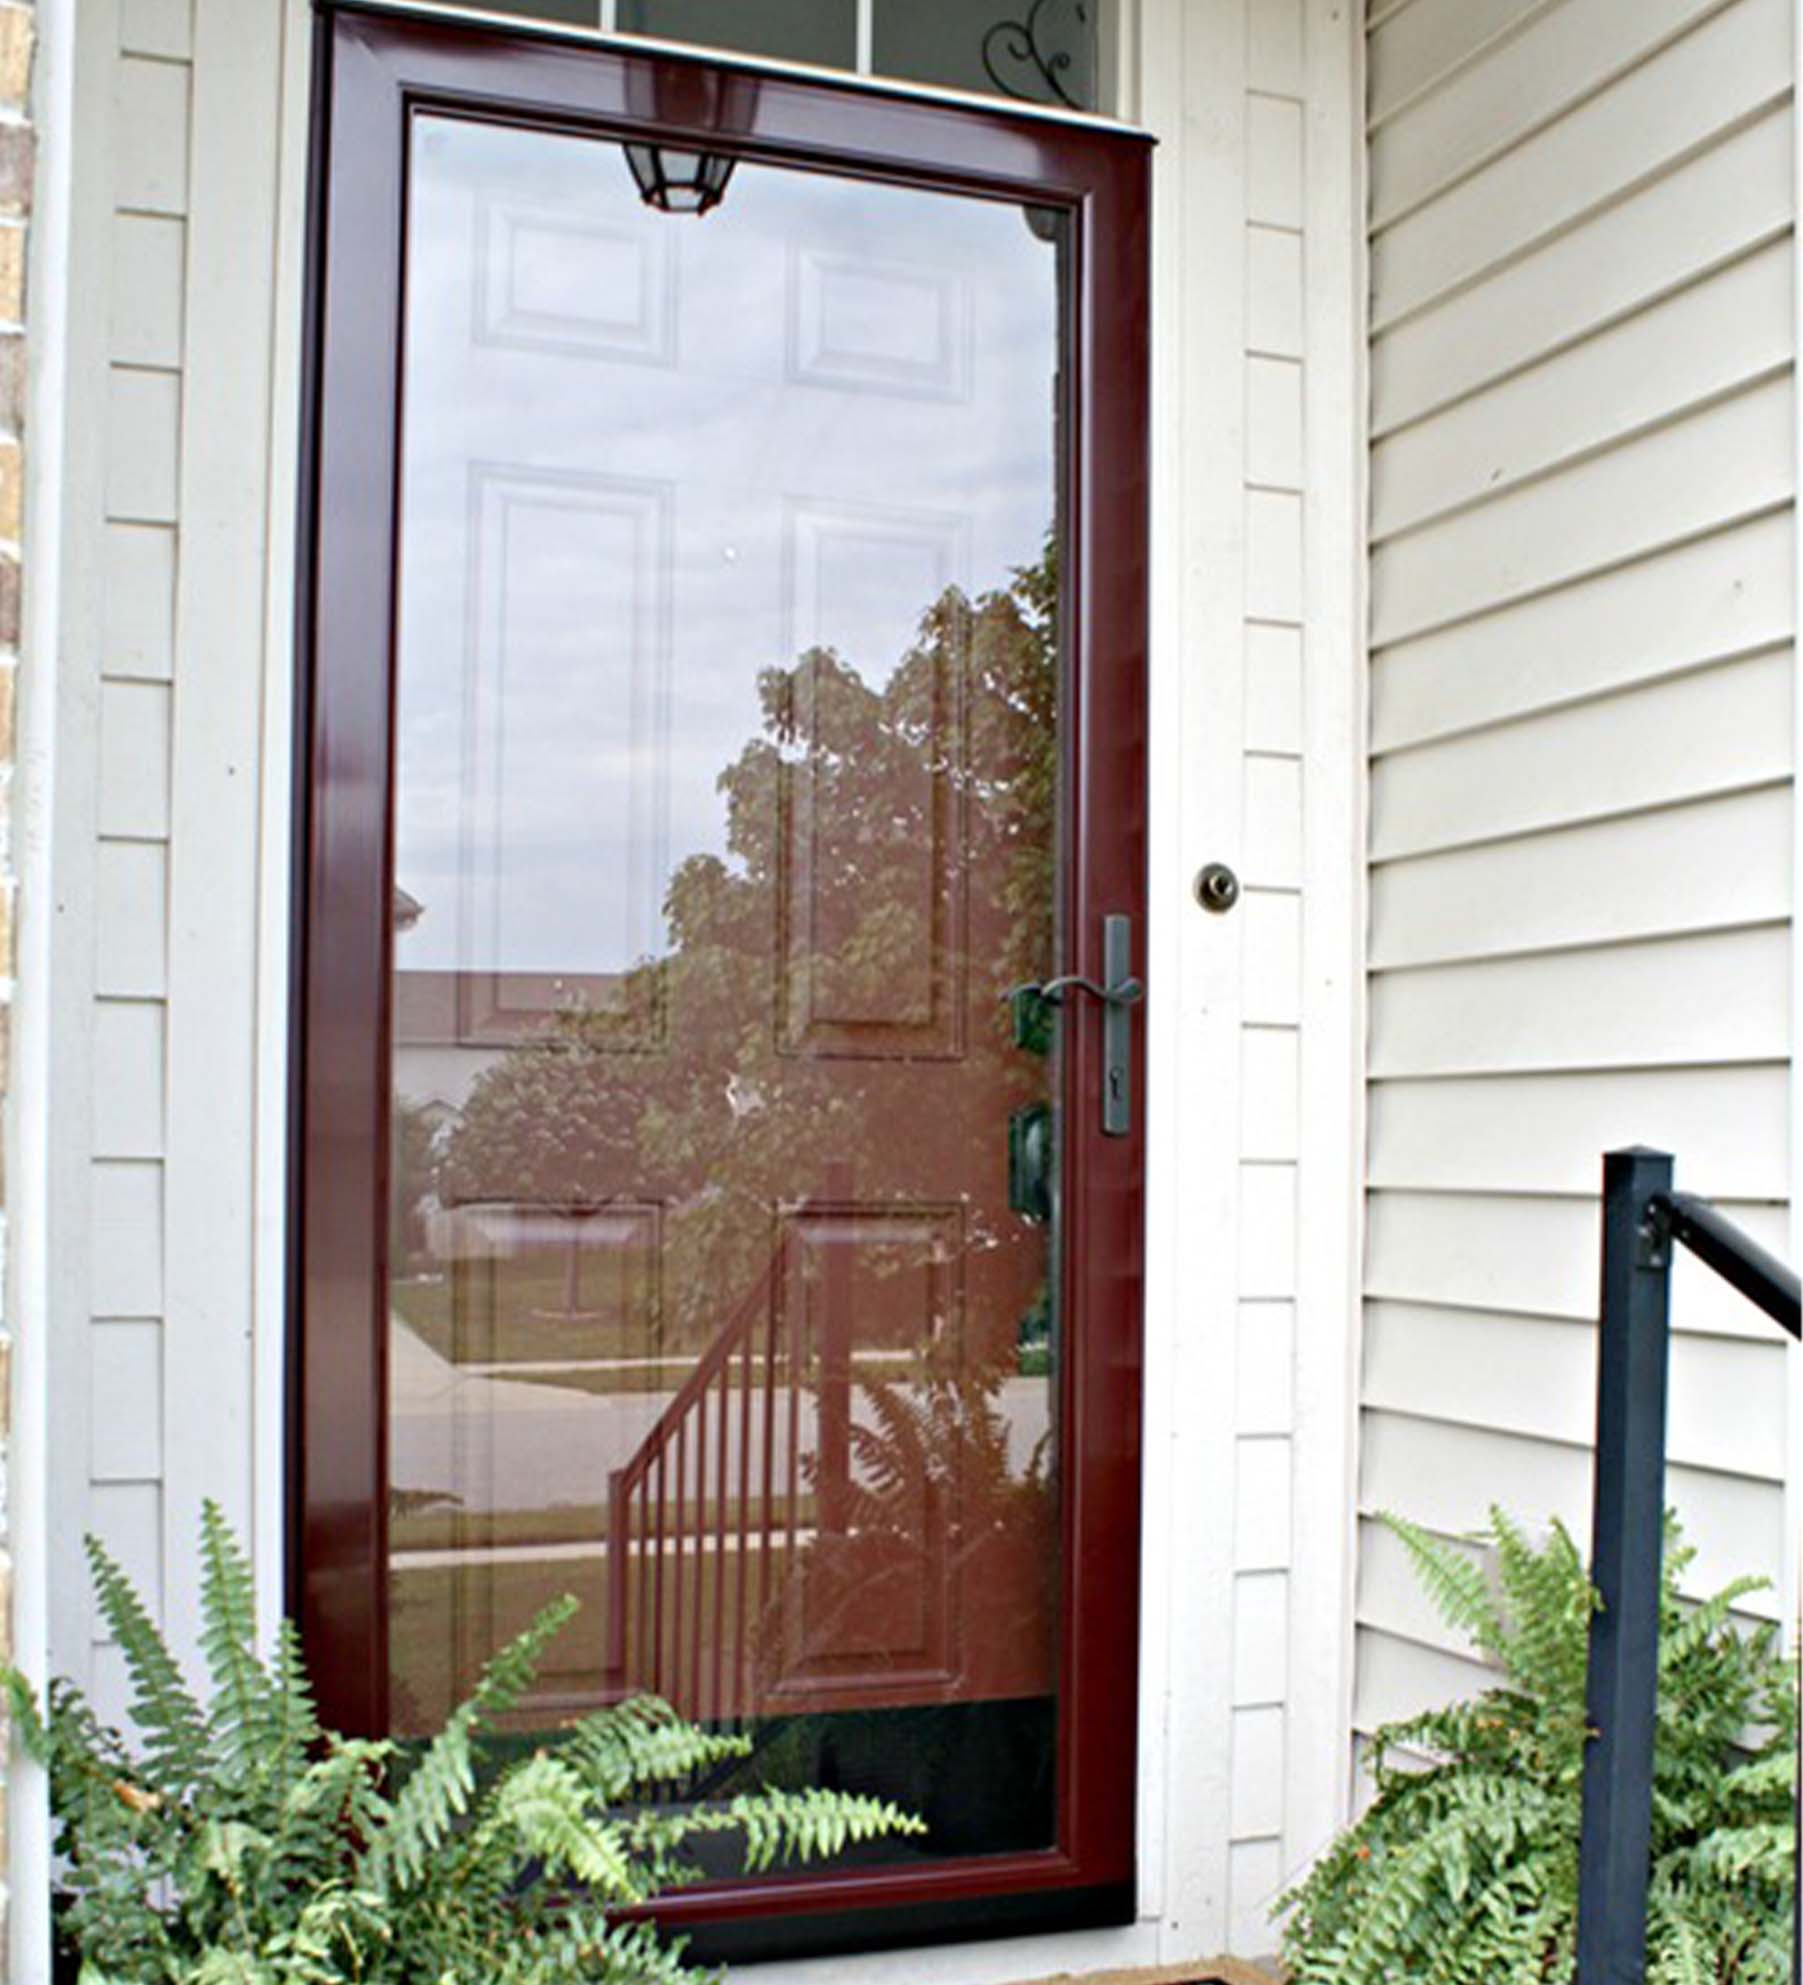 INSTALLED Larson Elegant Selection Full View Storm Door w/ Hardware       STARTING $577.99